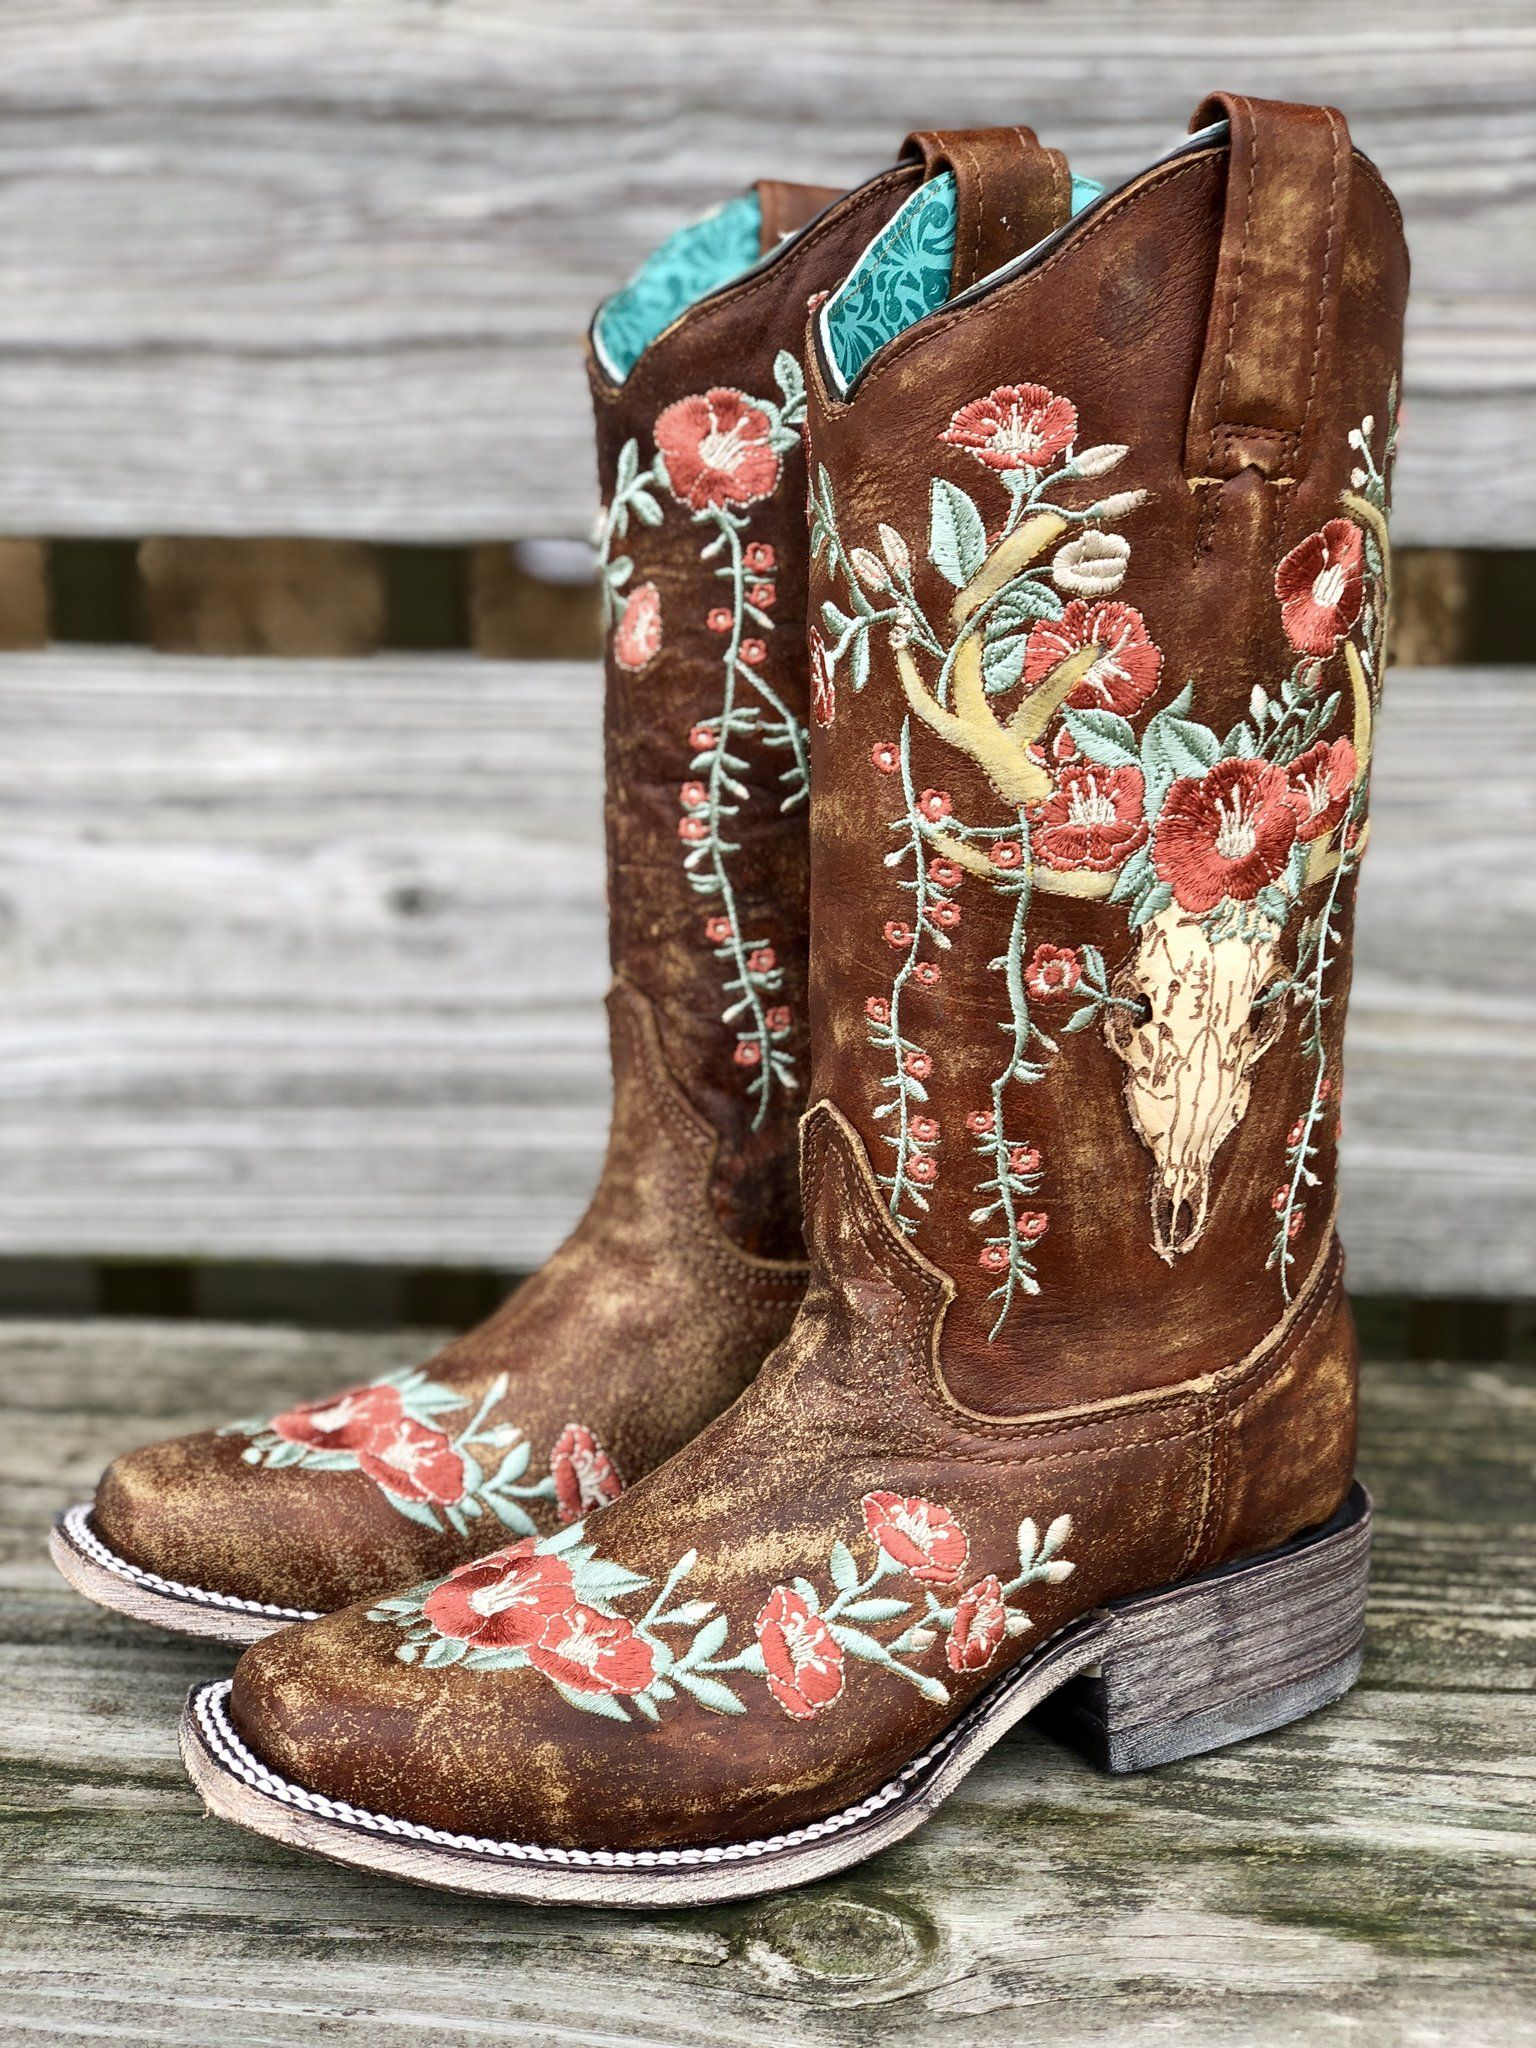 Corral Women's Deer Skull & Embroidery Distressed Tan Square Toe Boots A3708 15